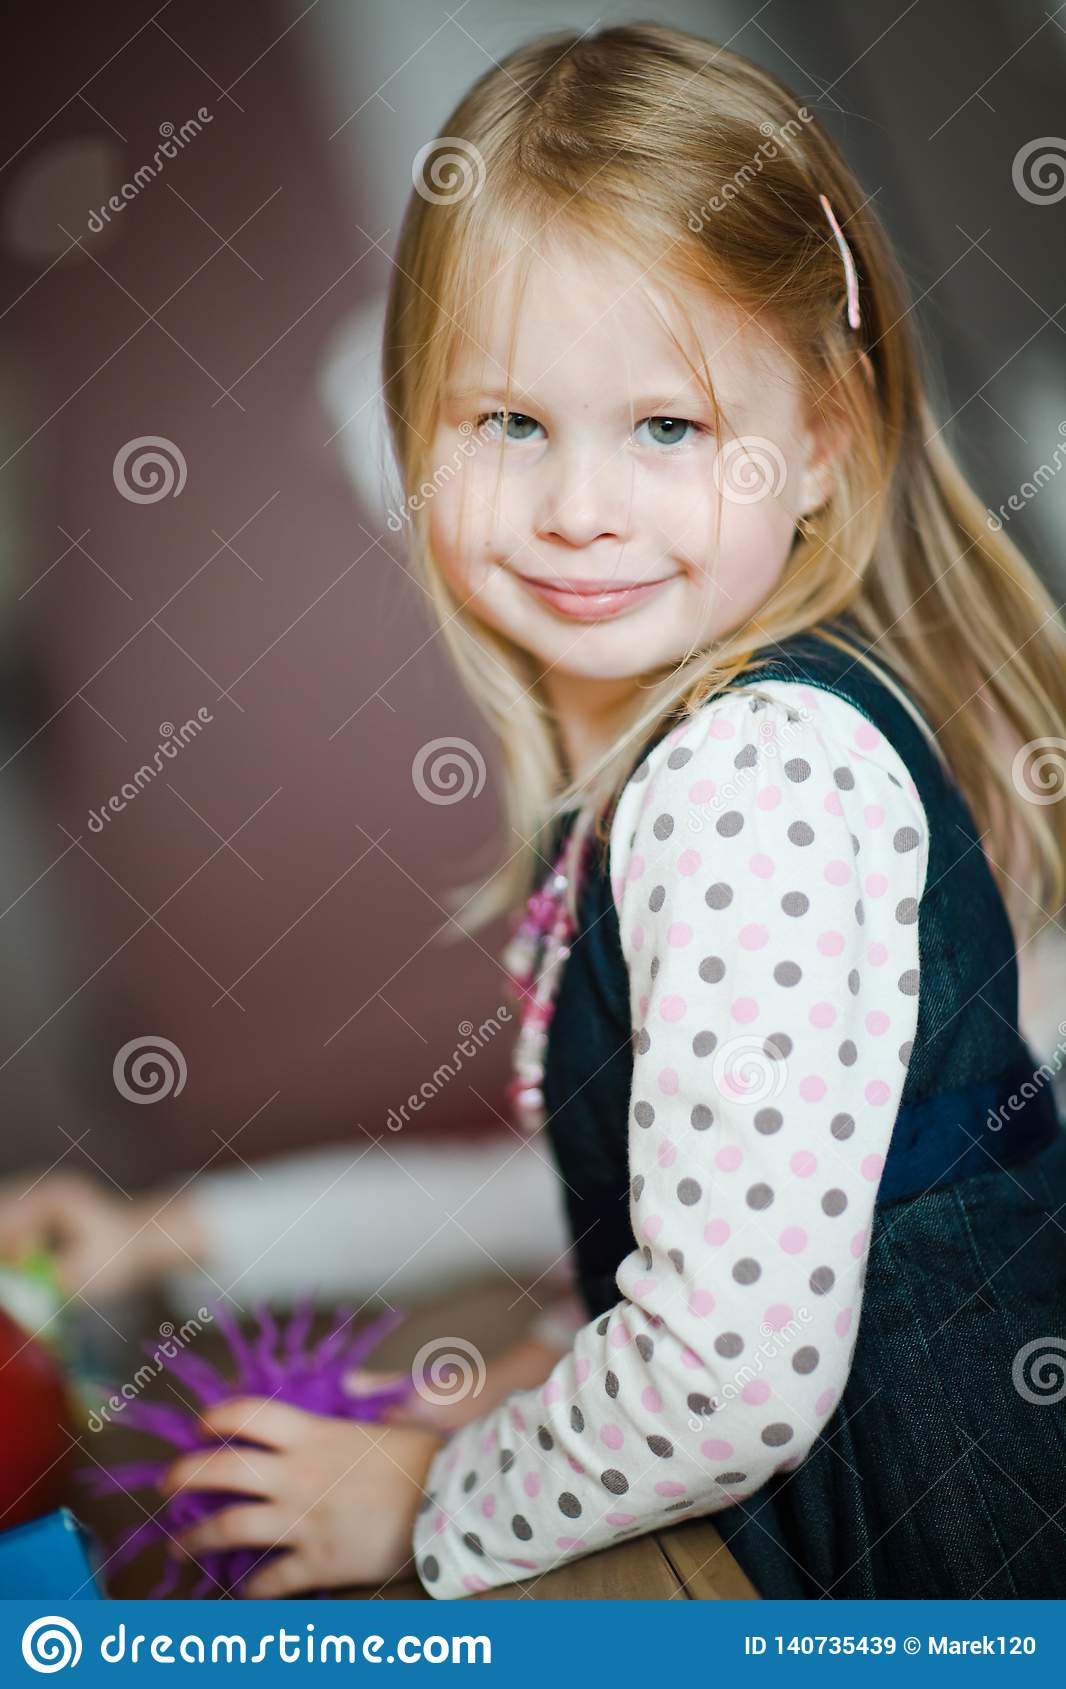 Child with long blond hairs playing - natural posing and smile